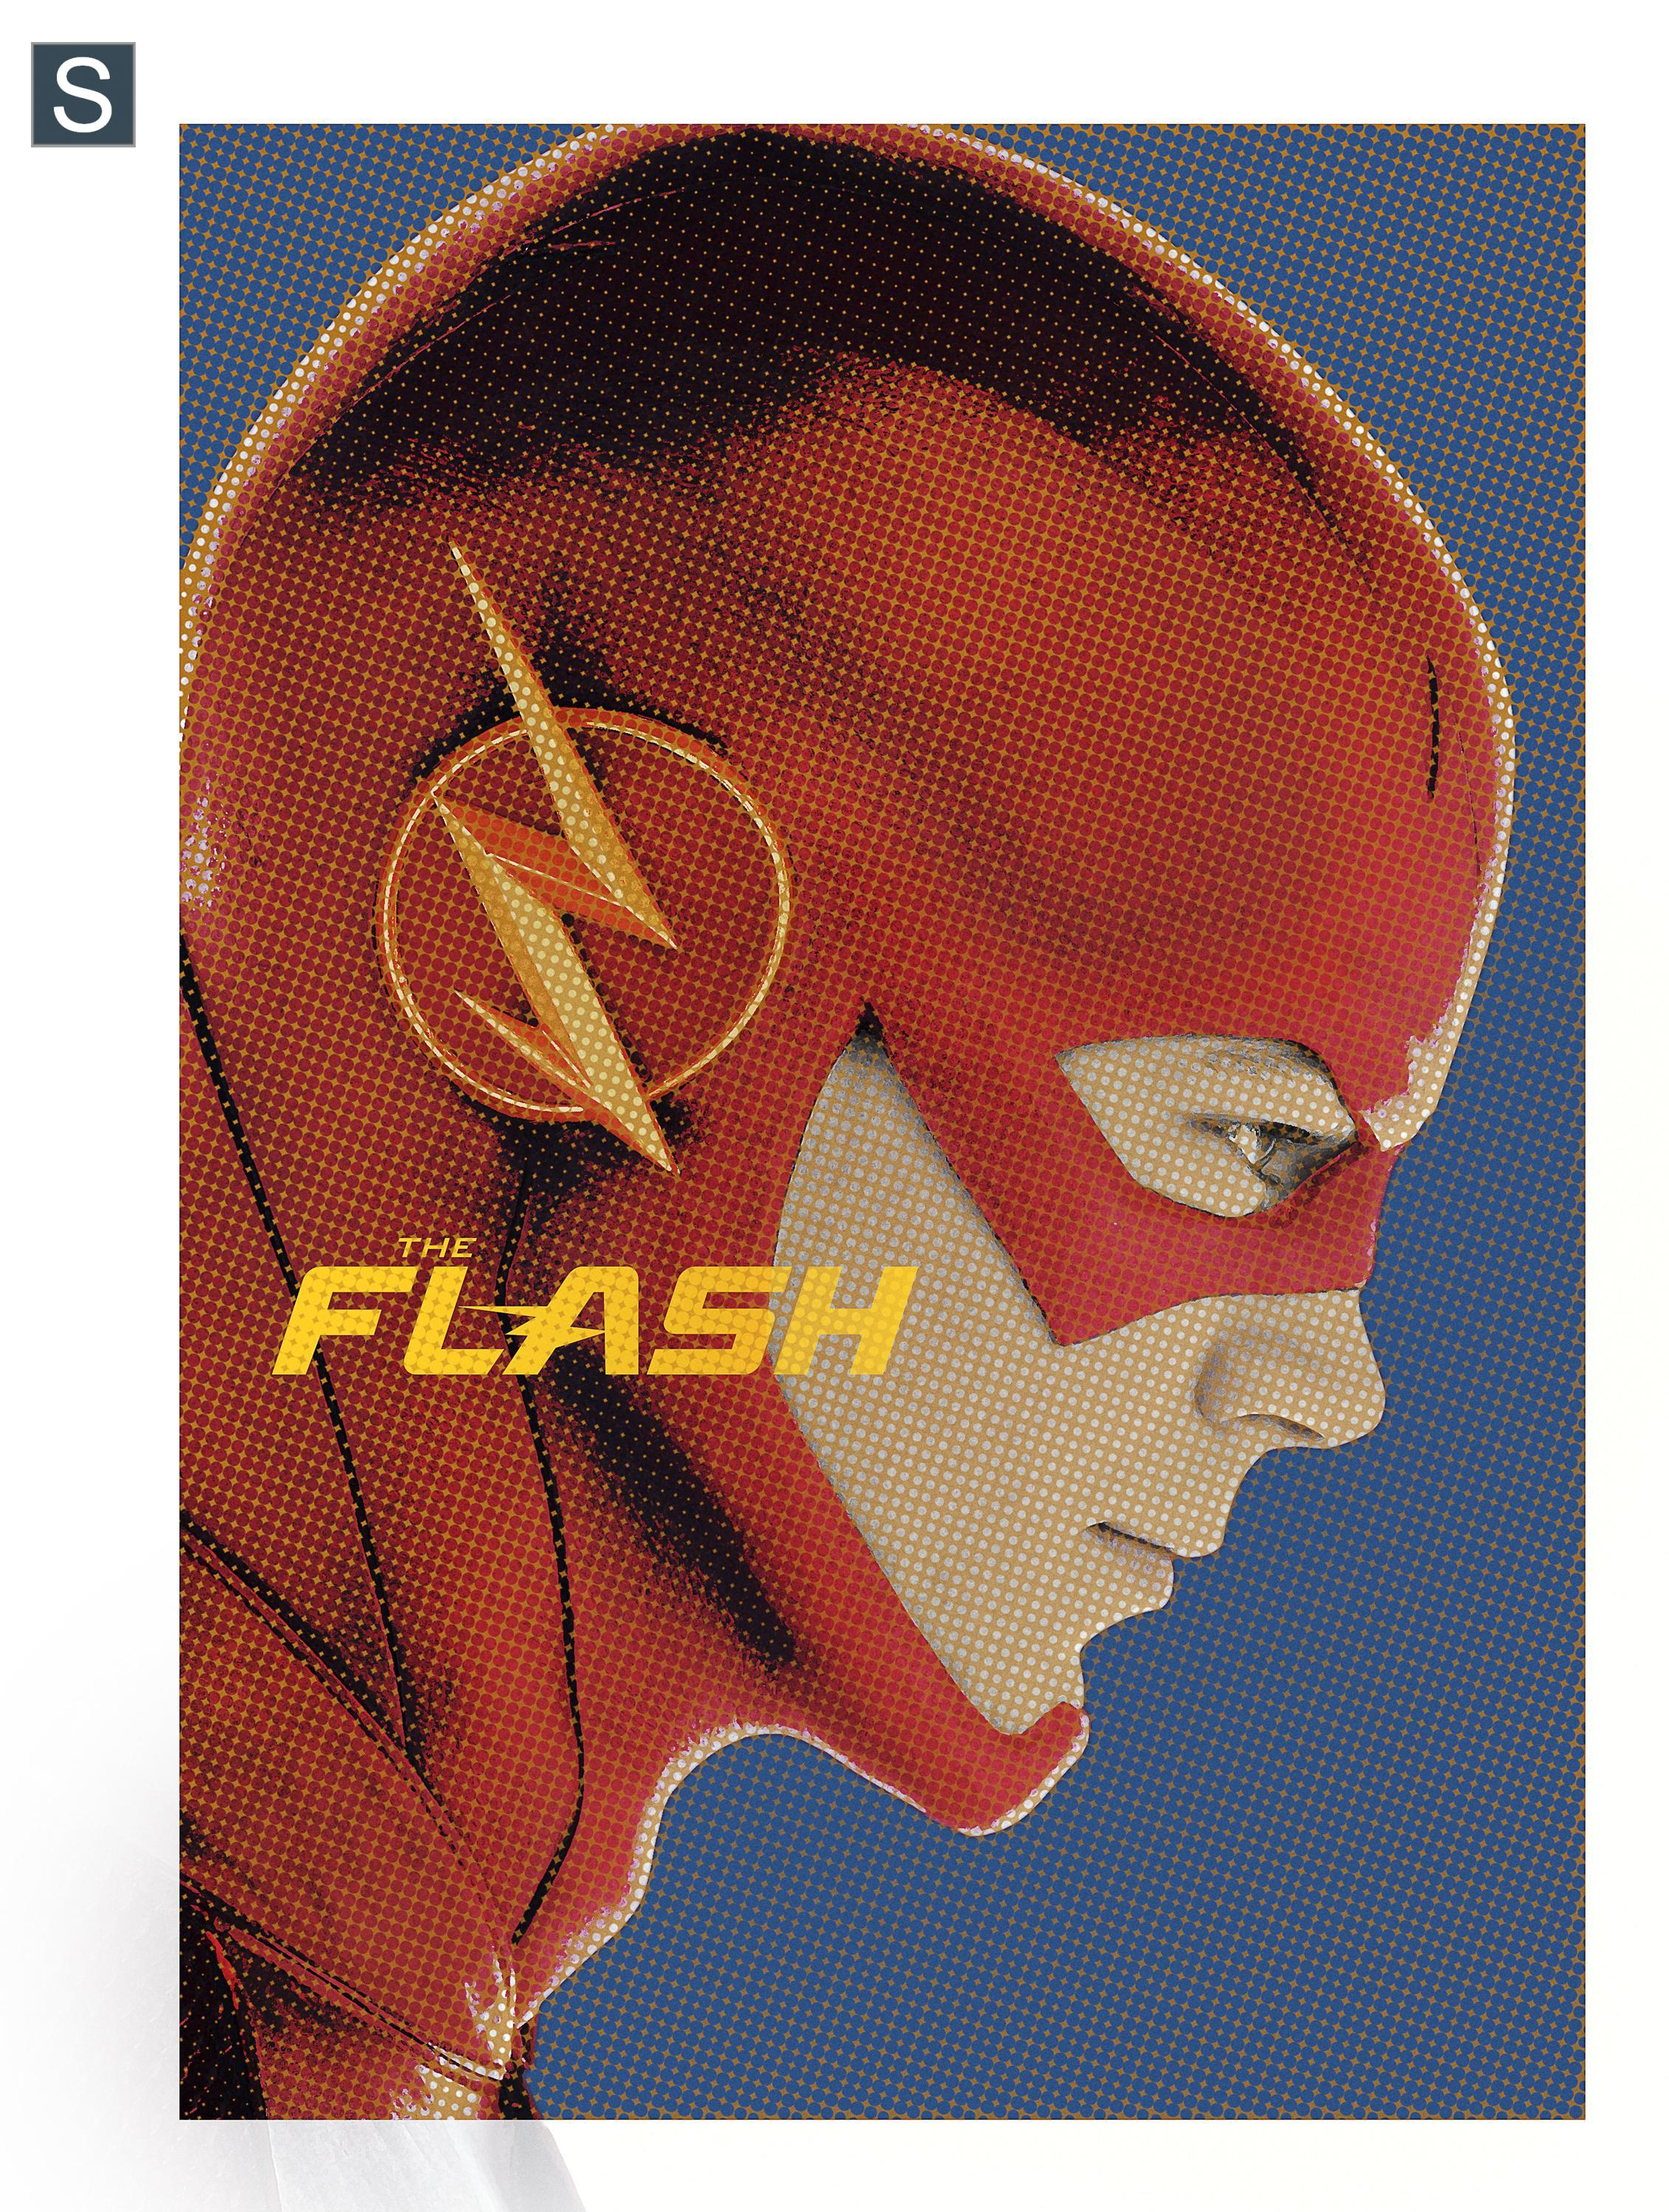 The Flash-Season 1-New Promotional Poster-03SETEMBRO2014-02